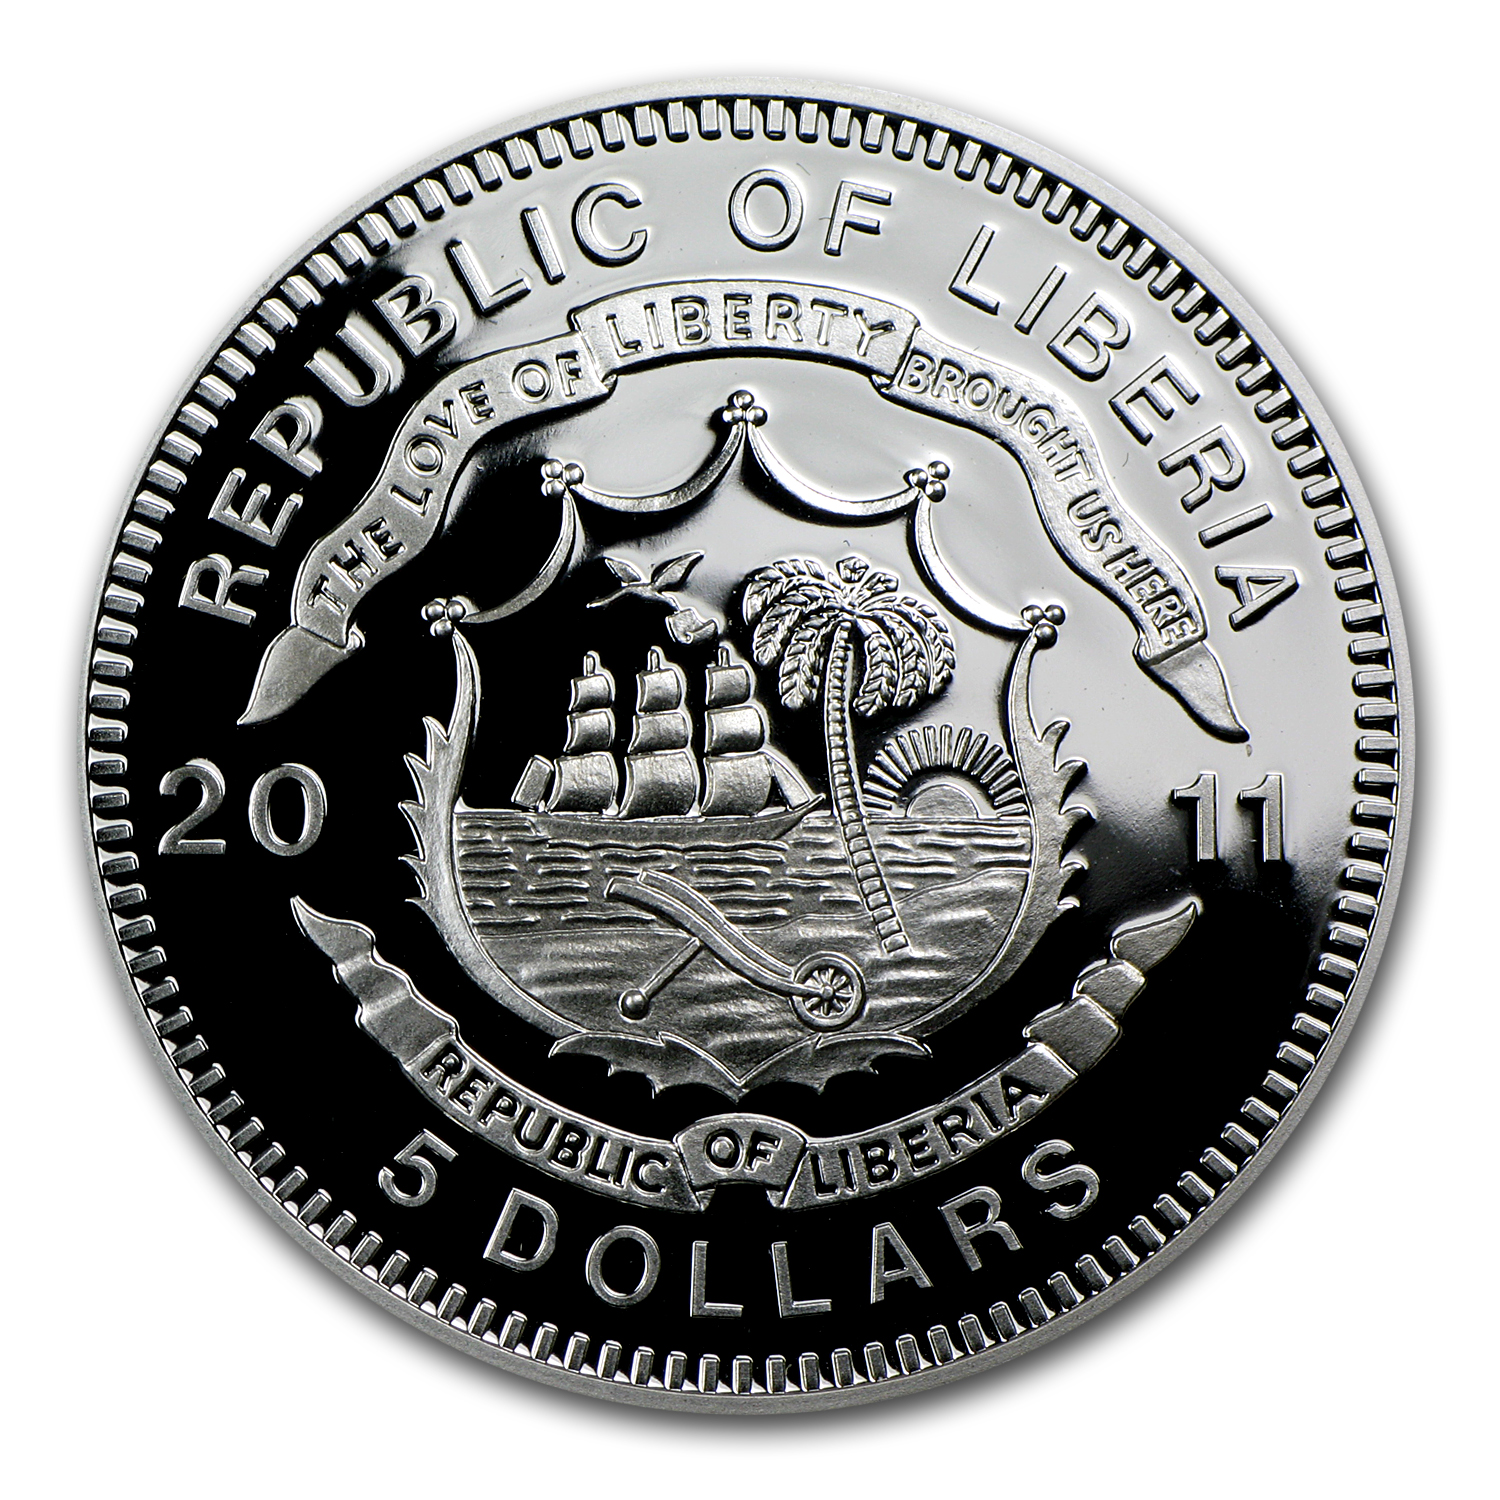 2011 Liberia Silver $5 Blue Train Proof